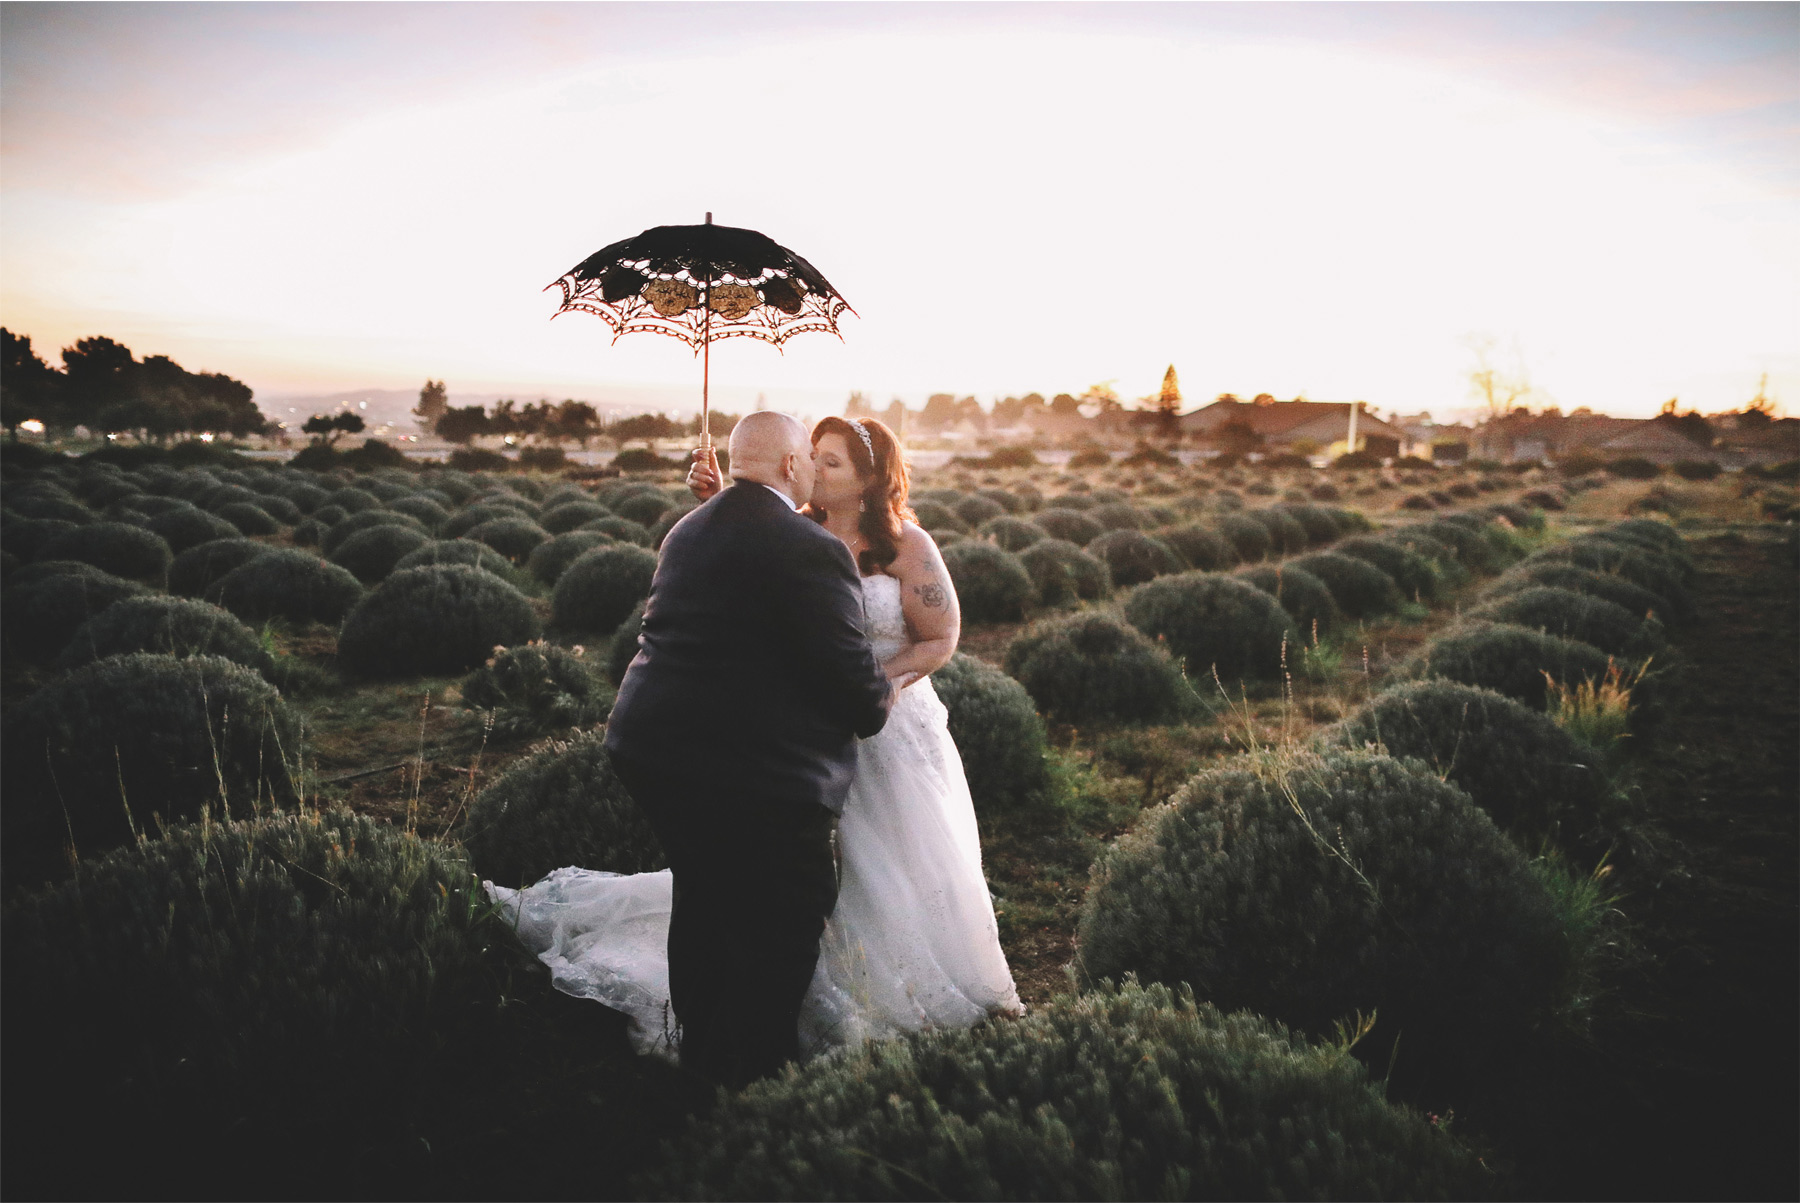 22-Los-Angeles-California-Wedding-Photographer-by-Vick-Photography-Highland-Springs-Ranch-LGBT-Night-Photography-Lavender-Field-Rebecca-and-Terri.jpg